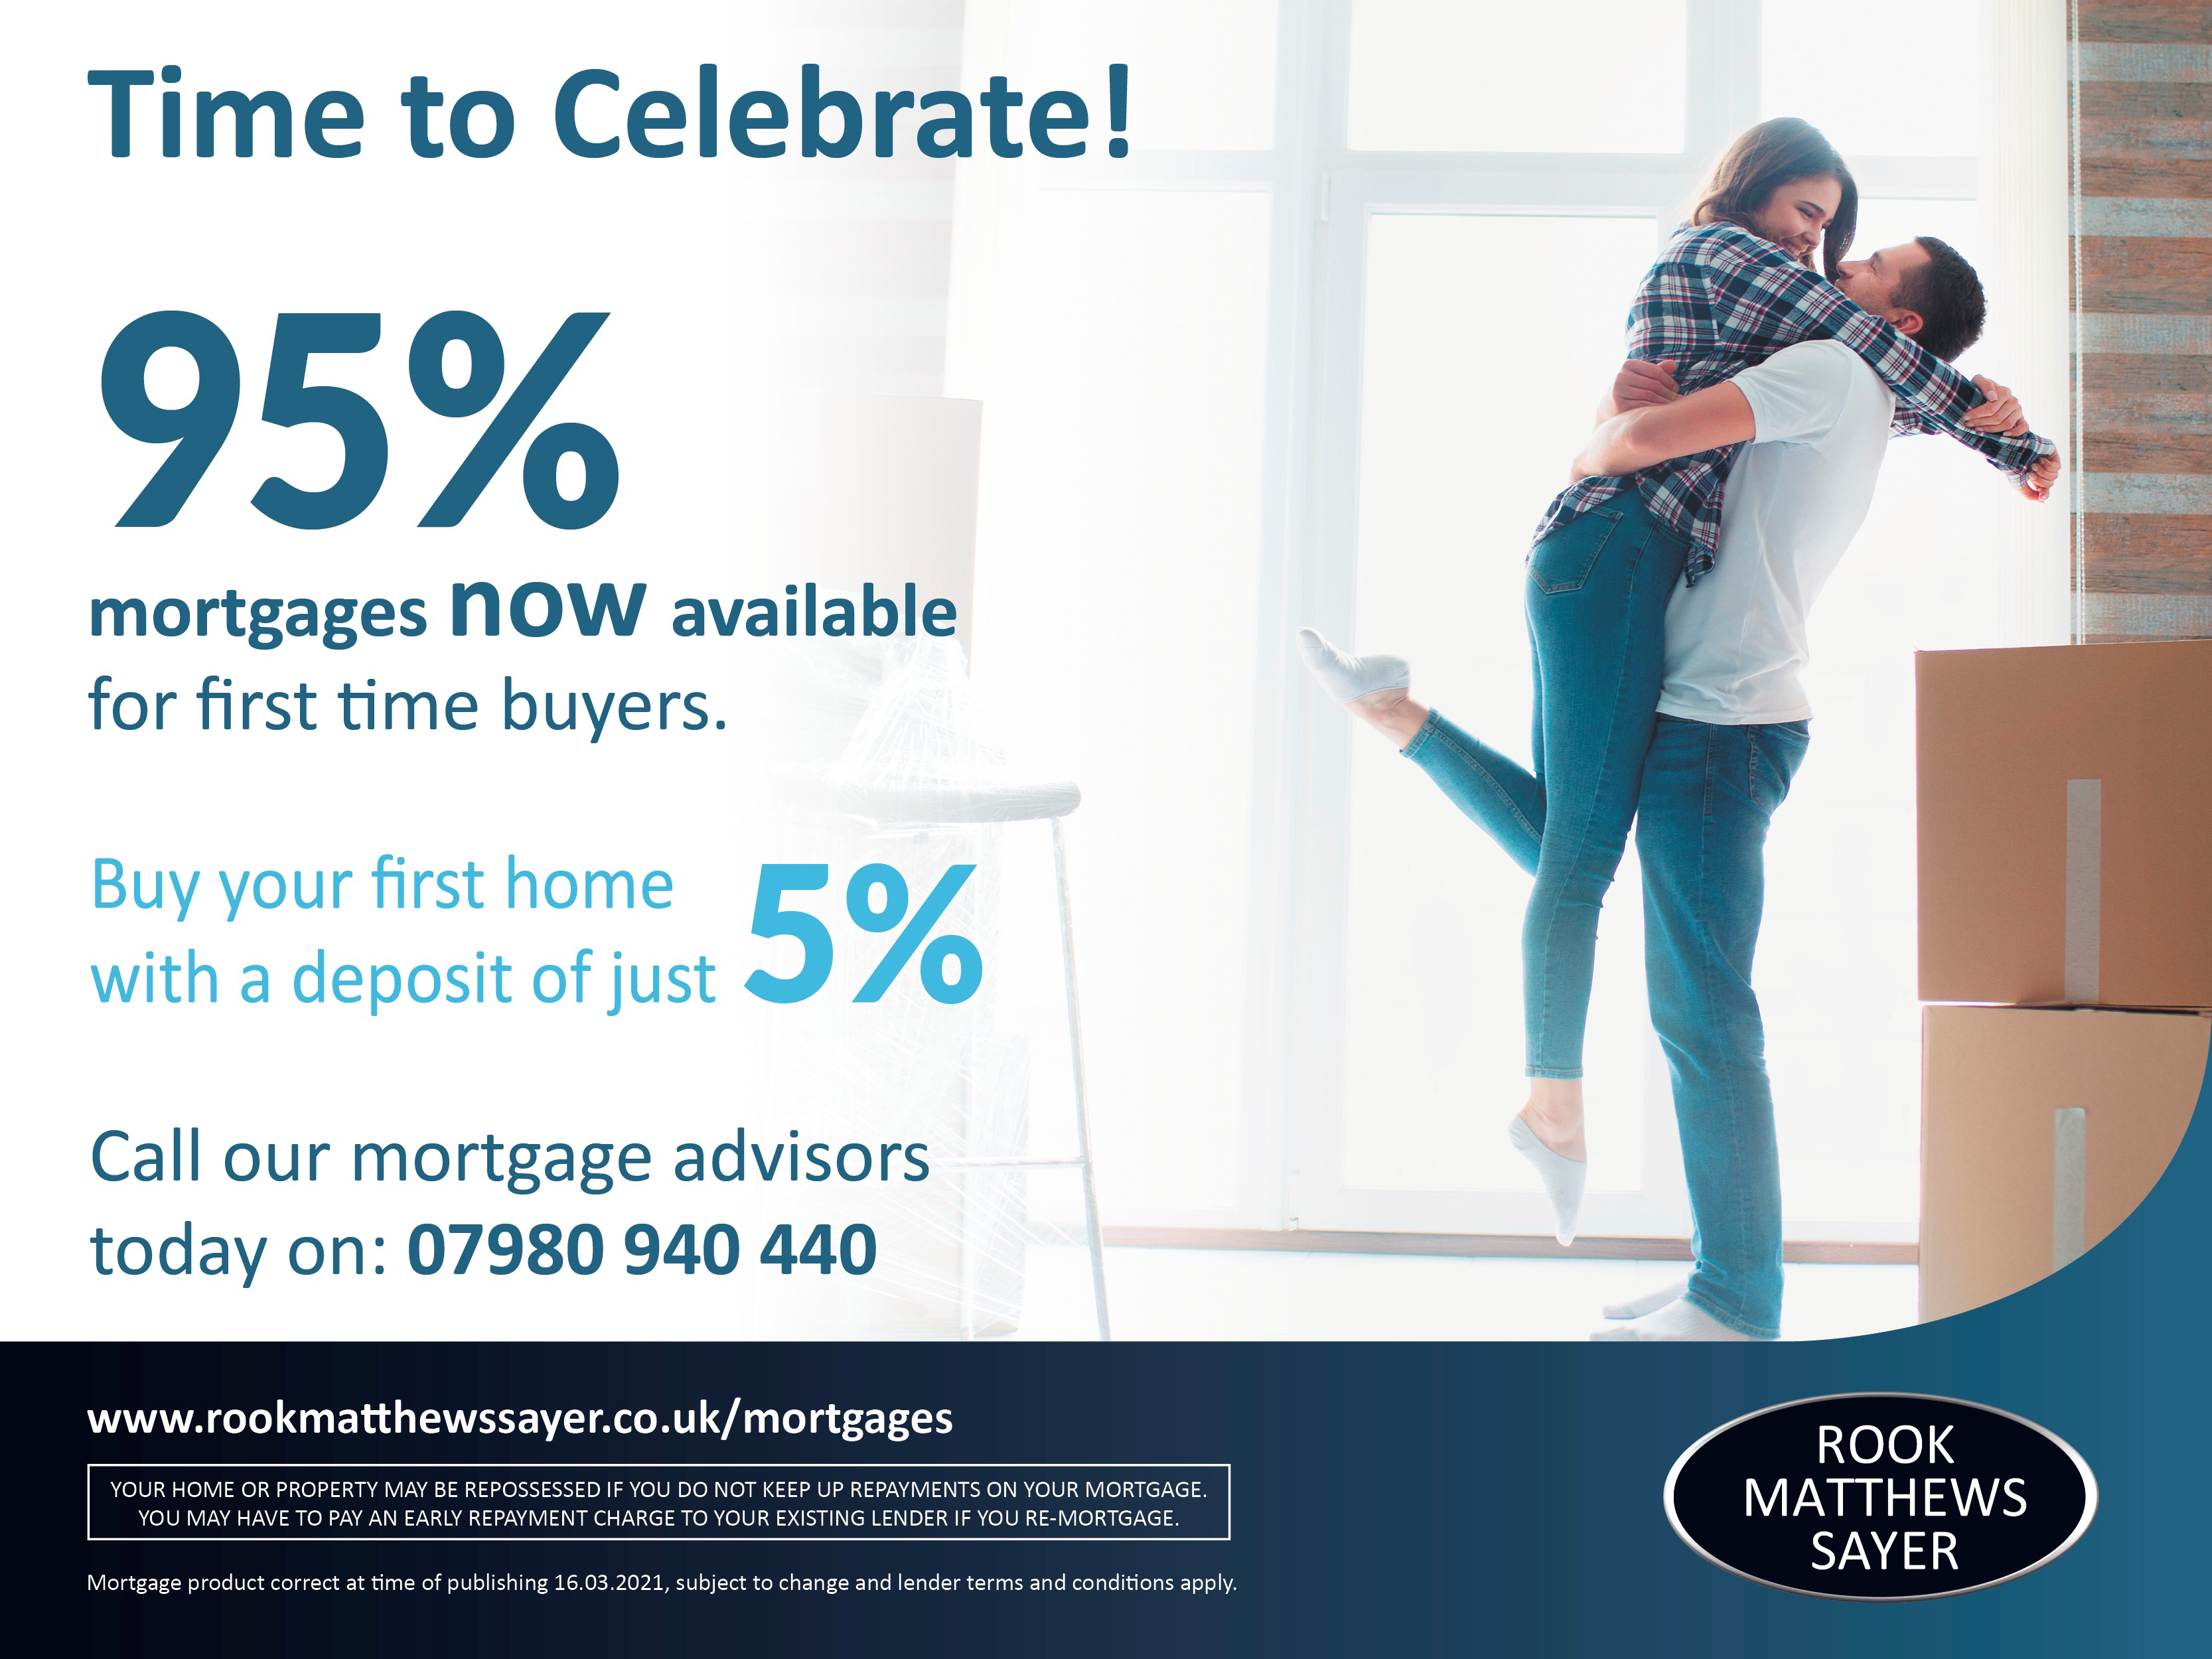 95% Mortgage product is NOW available!